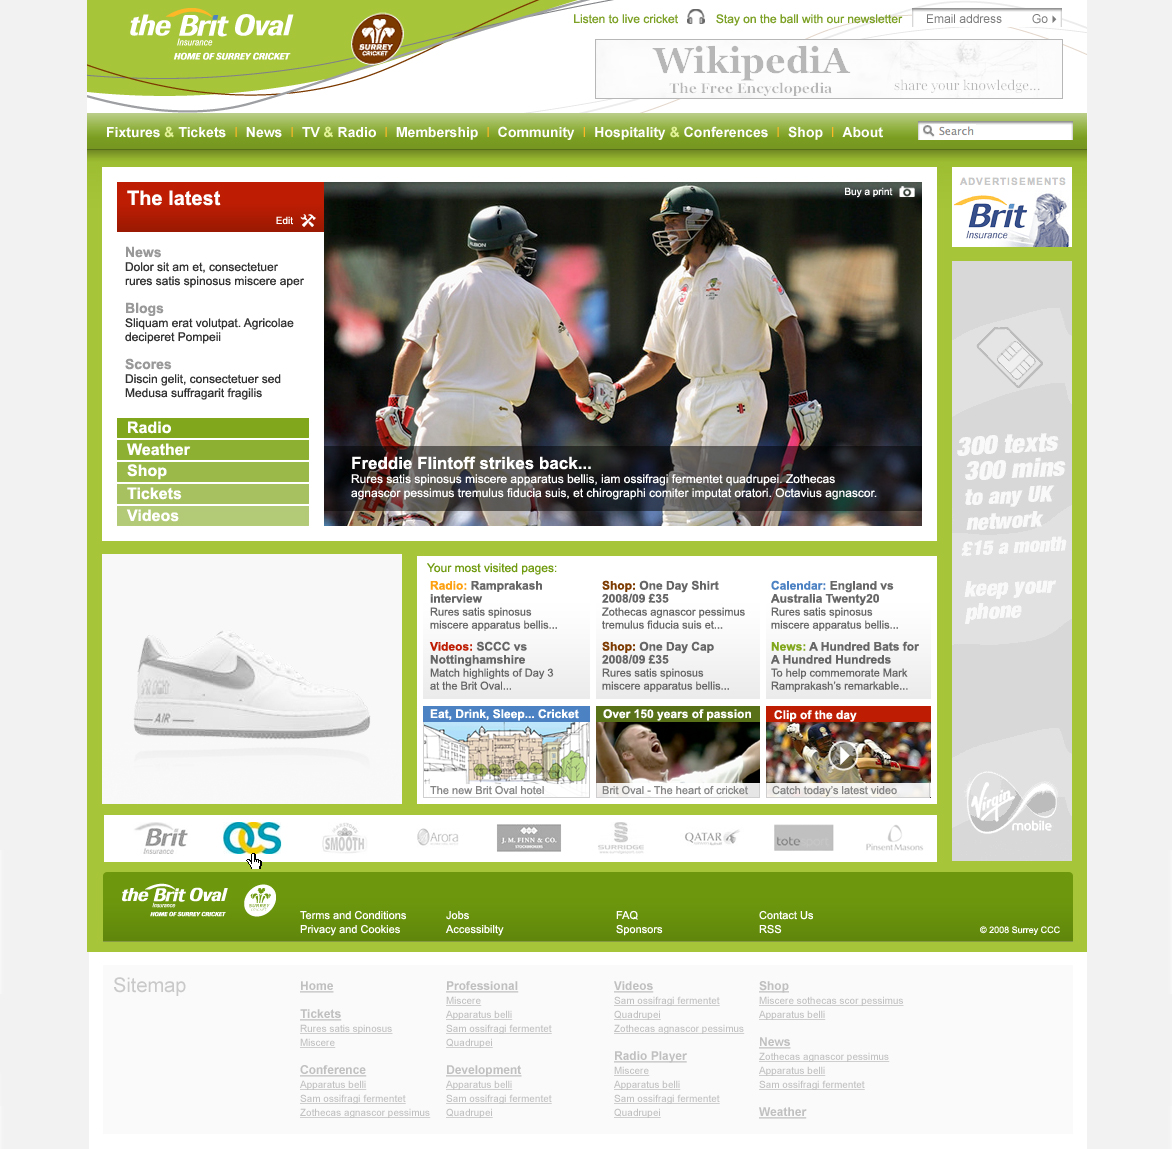 01_Oval_Home-news_Green_021008